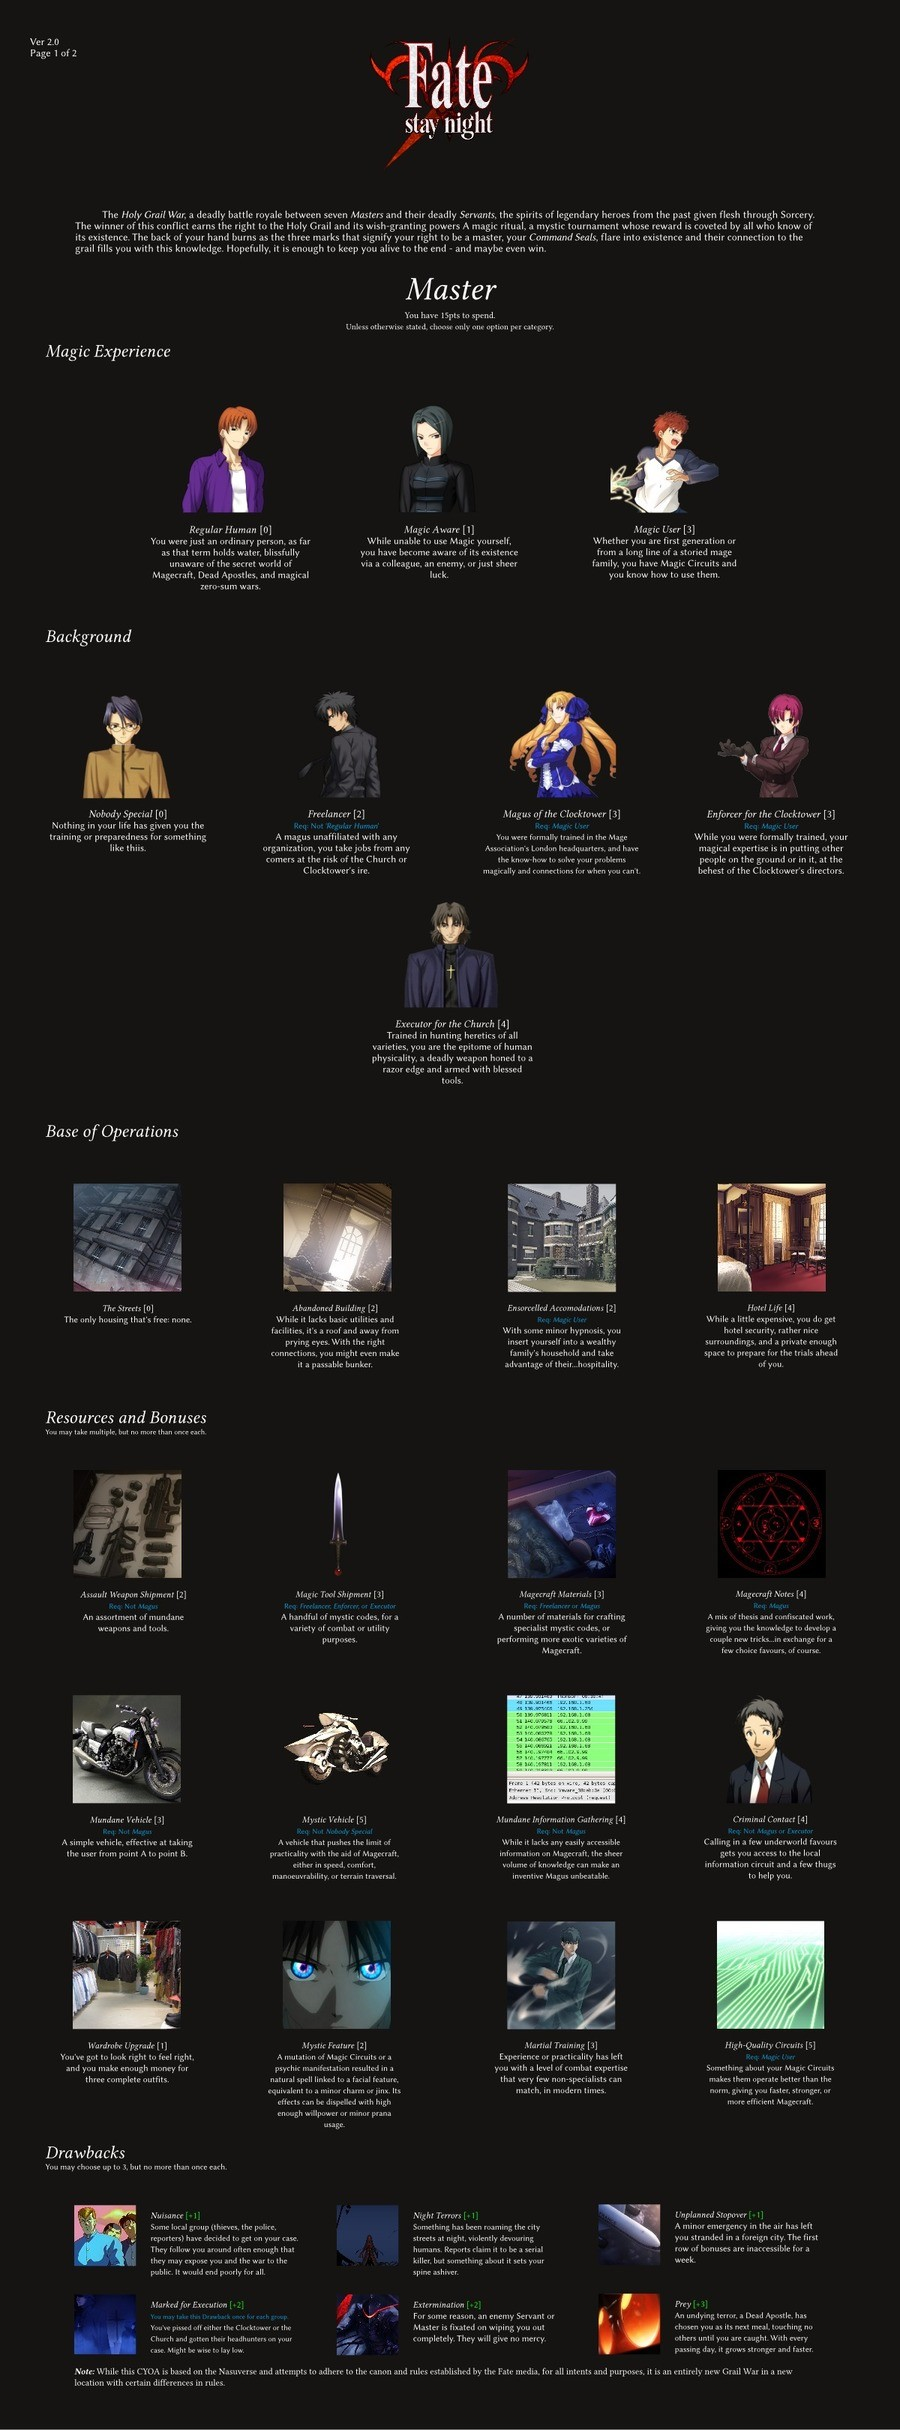 Fate/Stay ht CYOA. Third try is the charm... It's been a bit of a wait, but with the influx of CYOAs, I feel like the late posting is fine. Let me know your cho